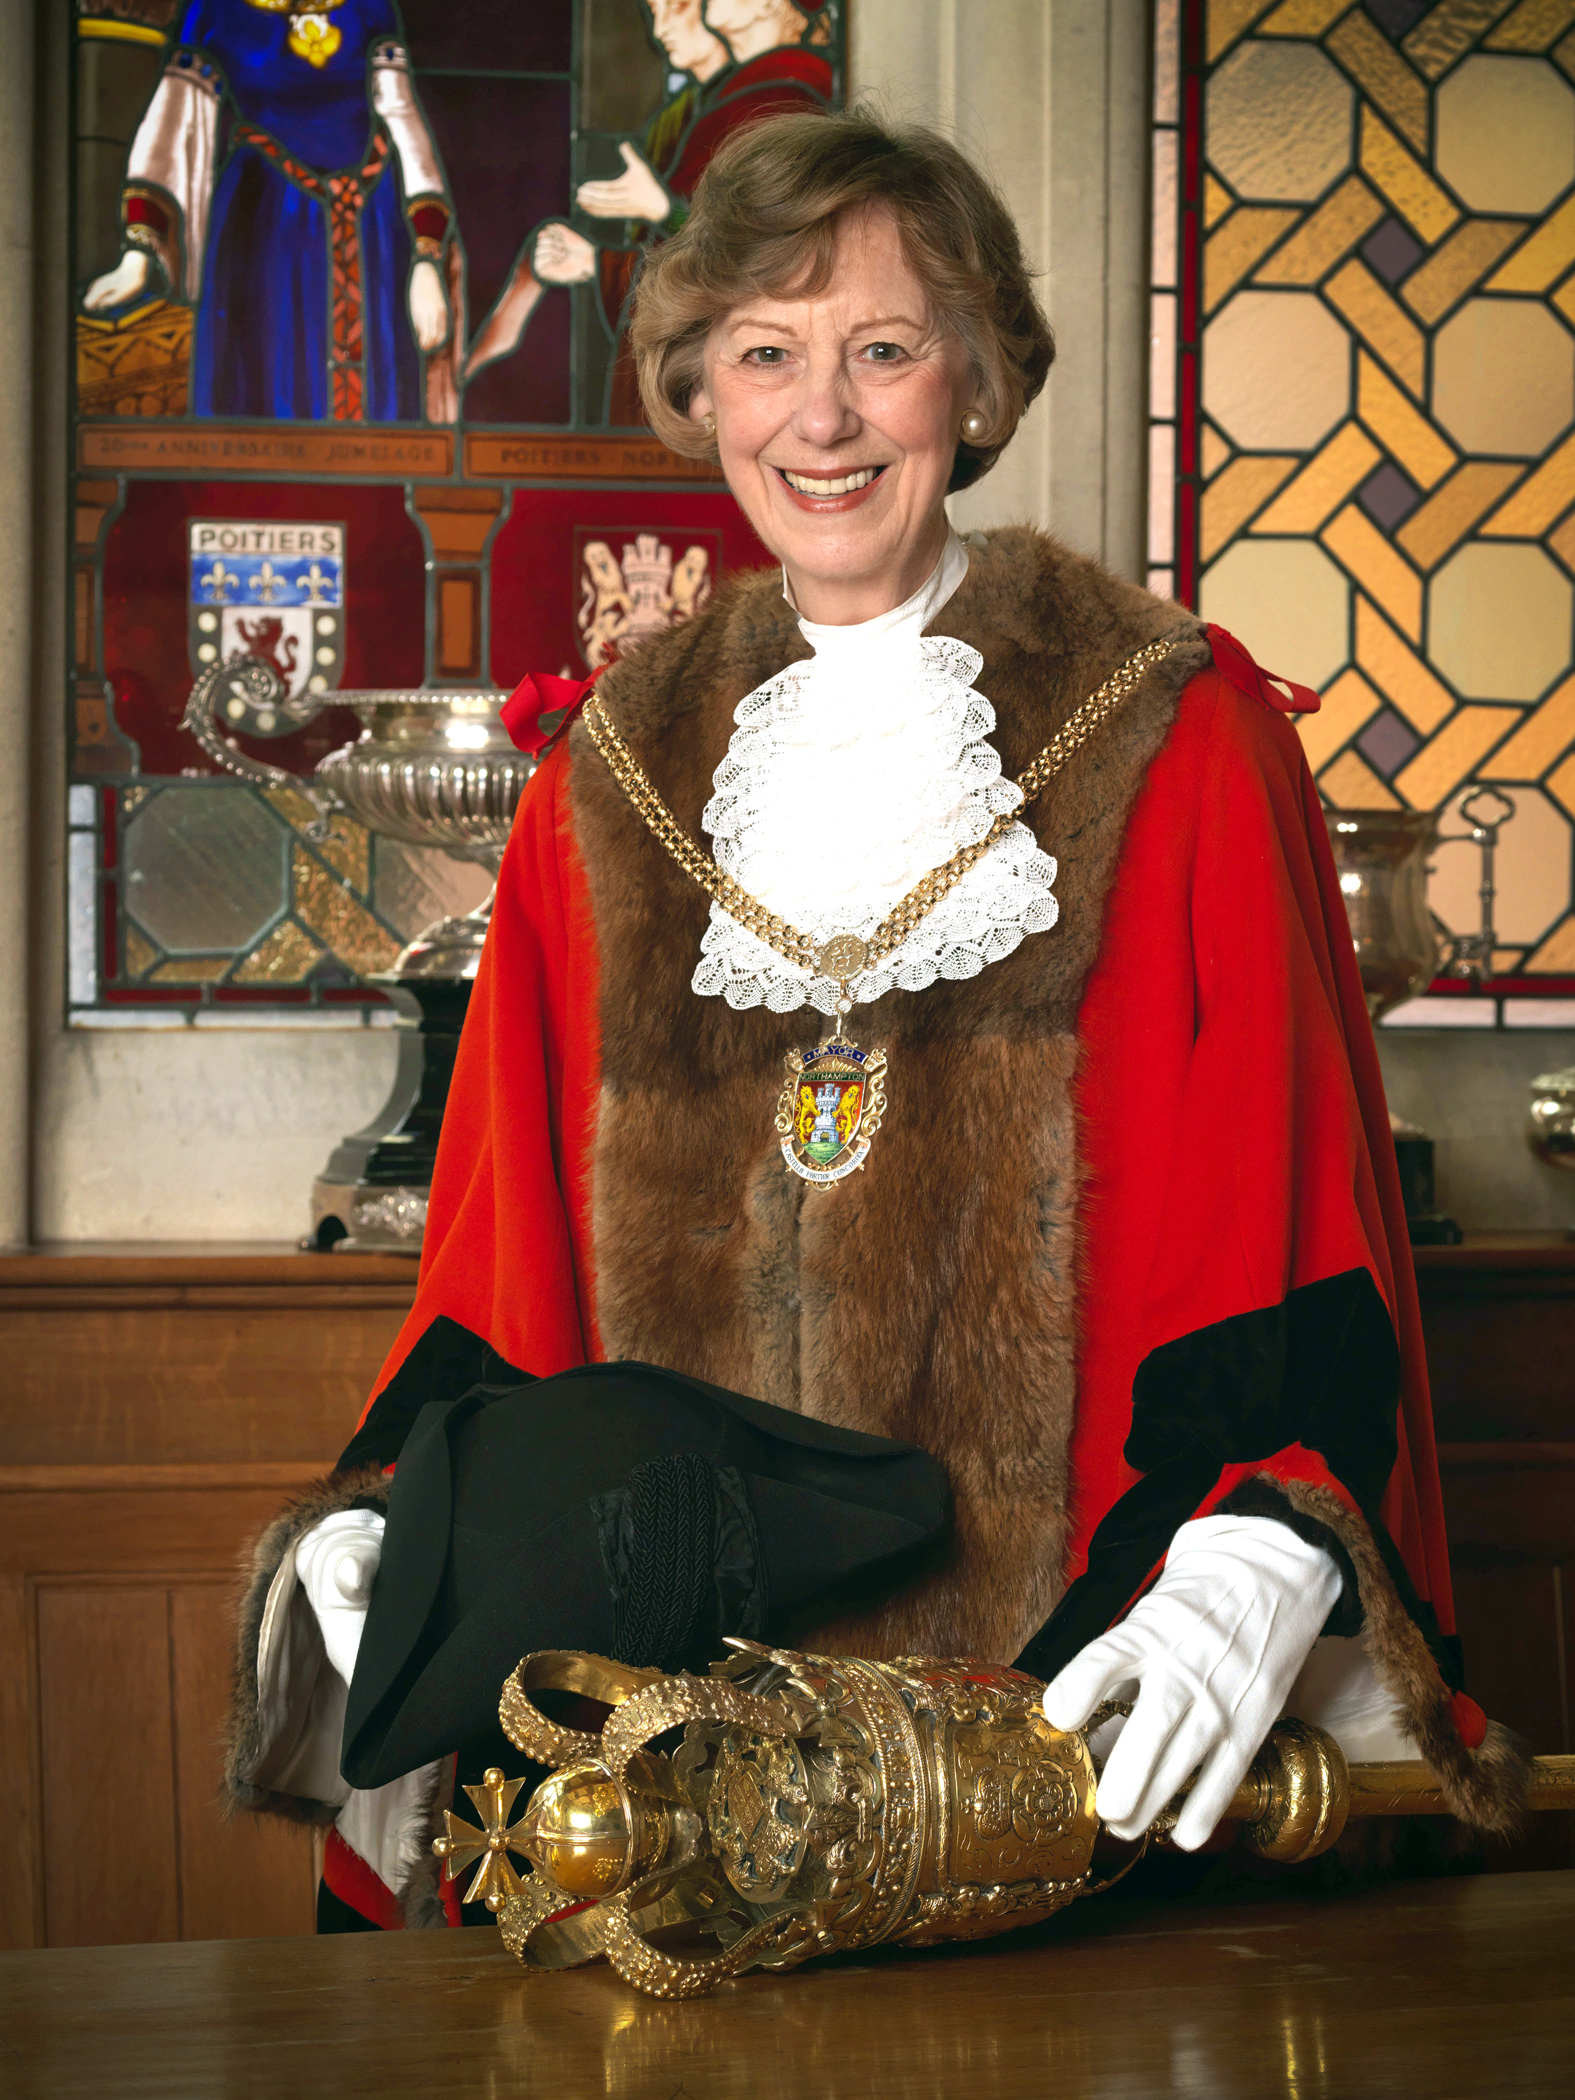 Mayor of Northampton, Councillor Penelope Flavell